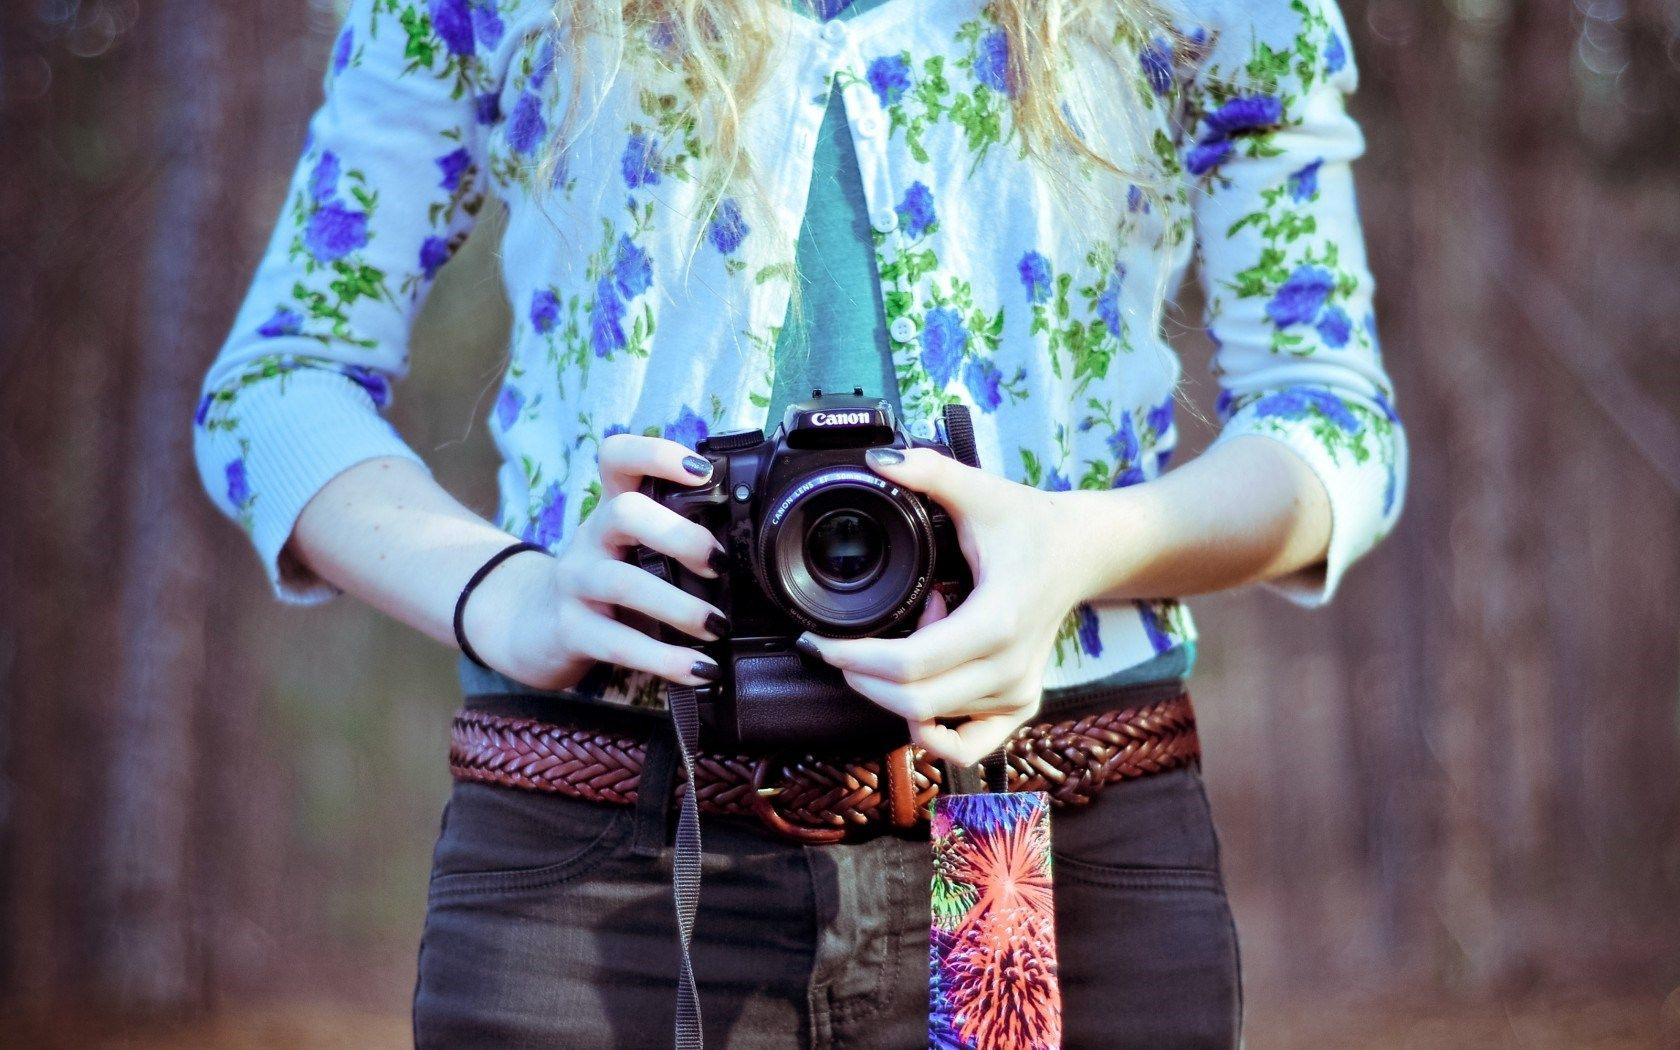 Canon Dslr Forest Girl Floral Shirt Hd Wallpaper Cool Wallpapers